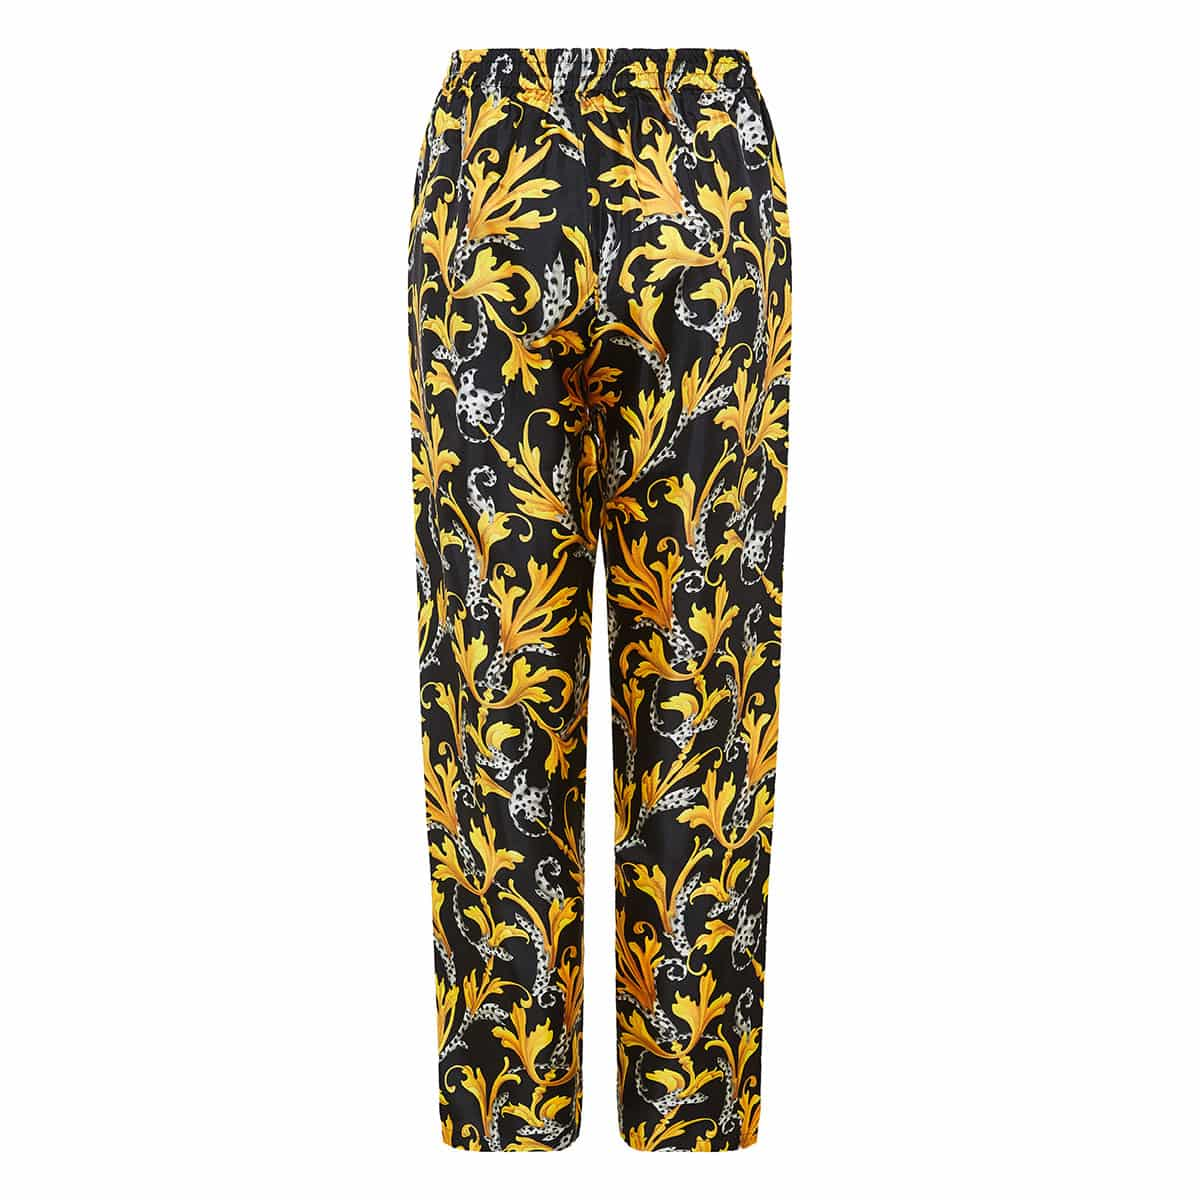 Baroque print pajama trousers